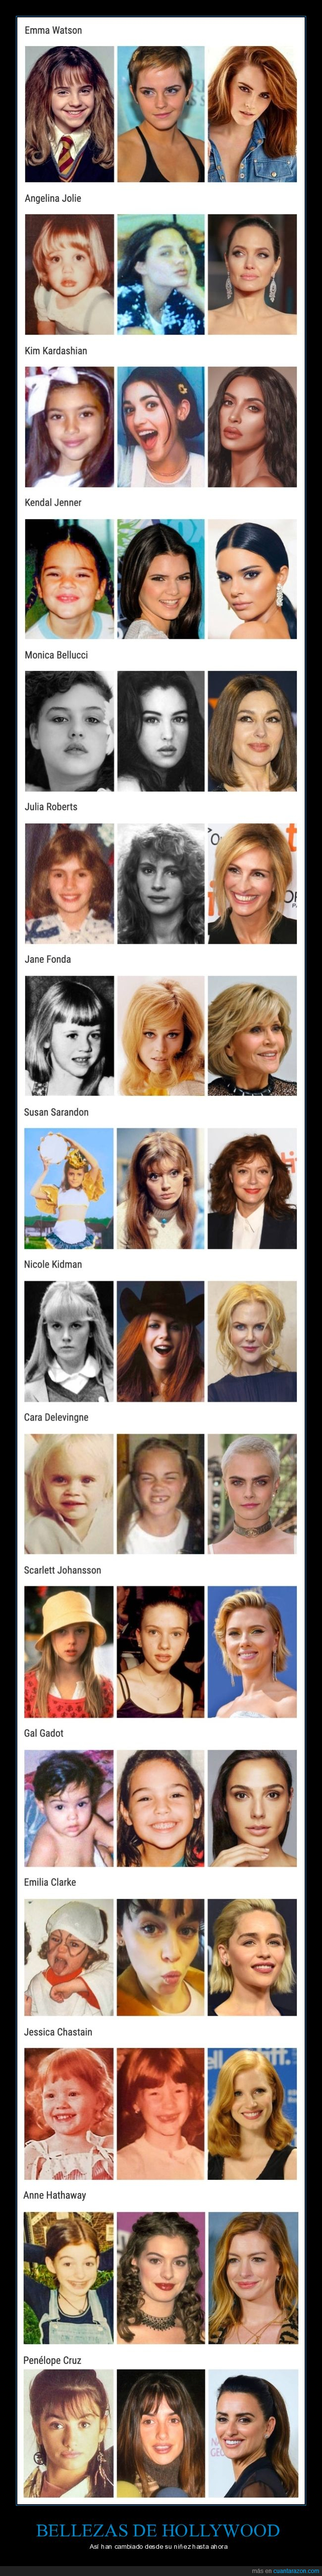 actrices,ahora,antes,cine,hillywood